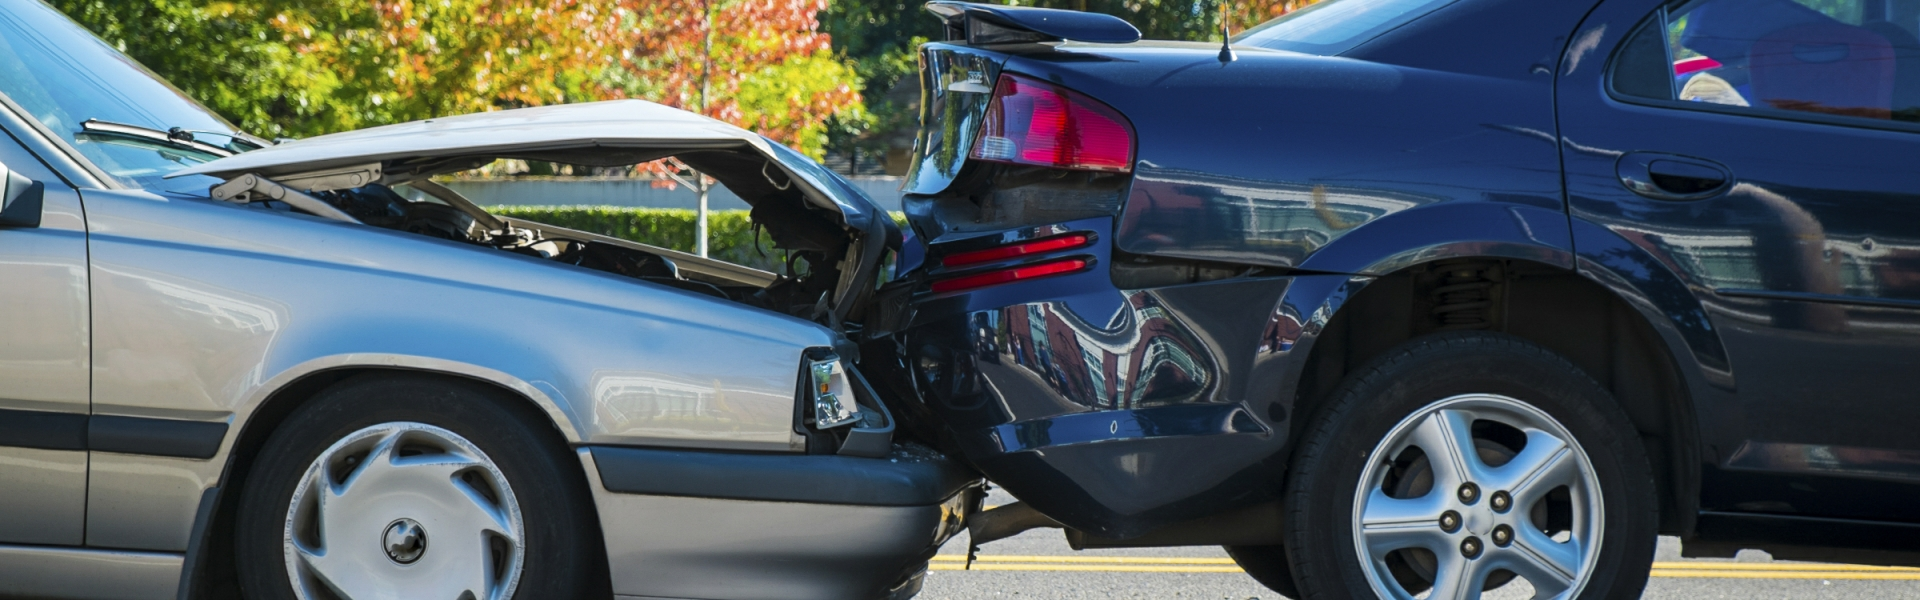 personal injury car accident attorney conway sc